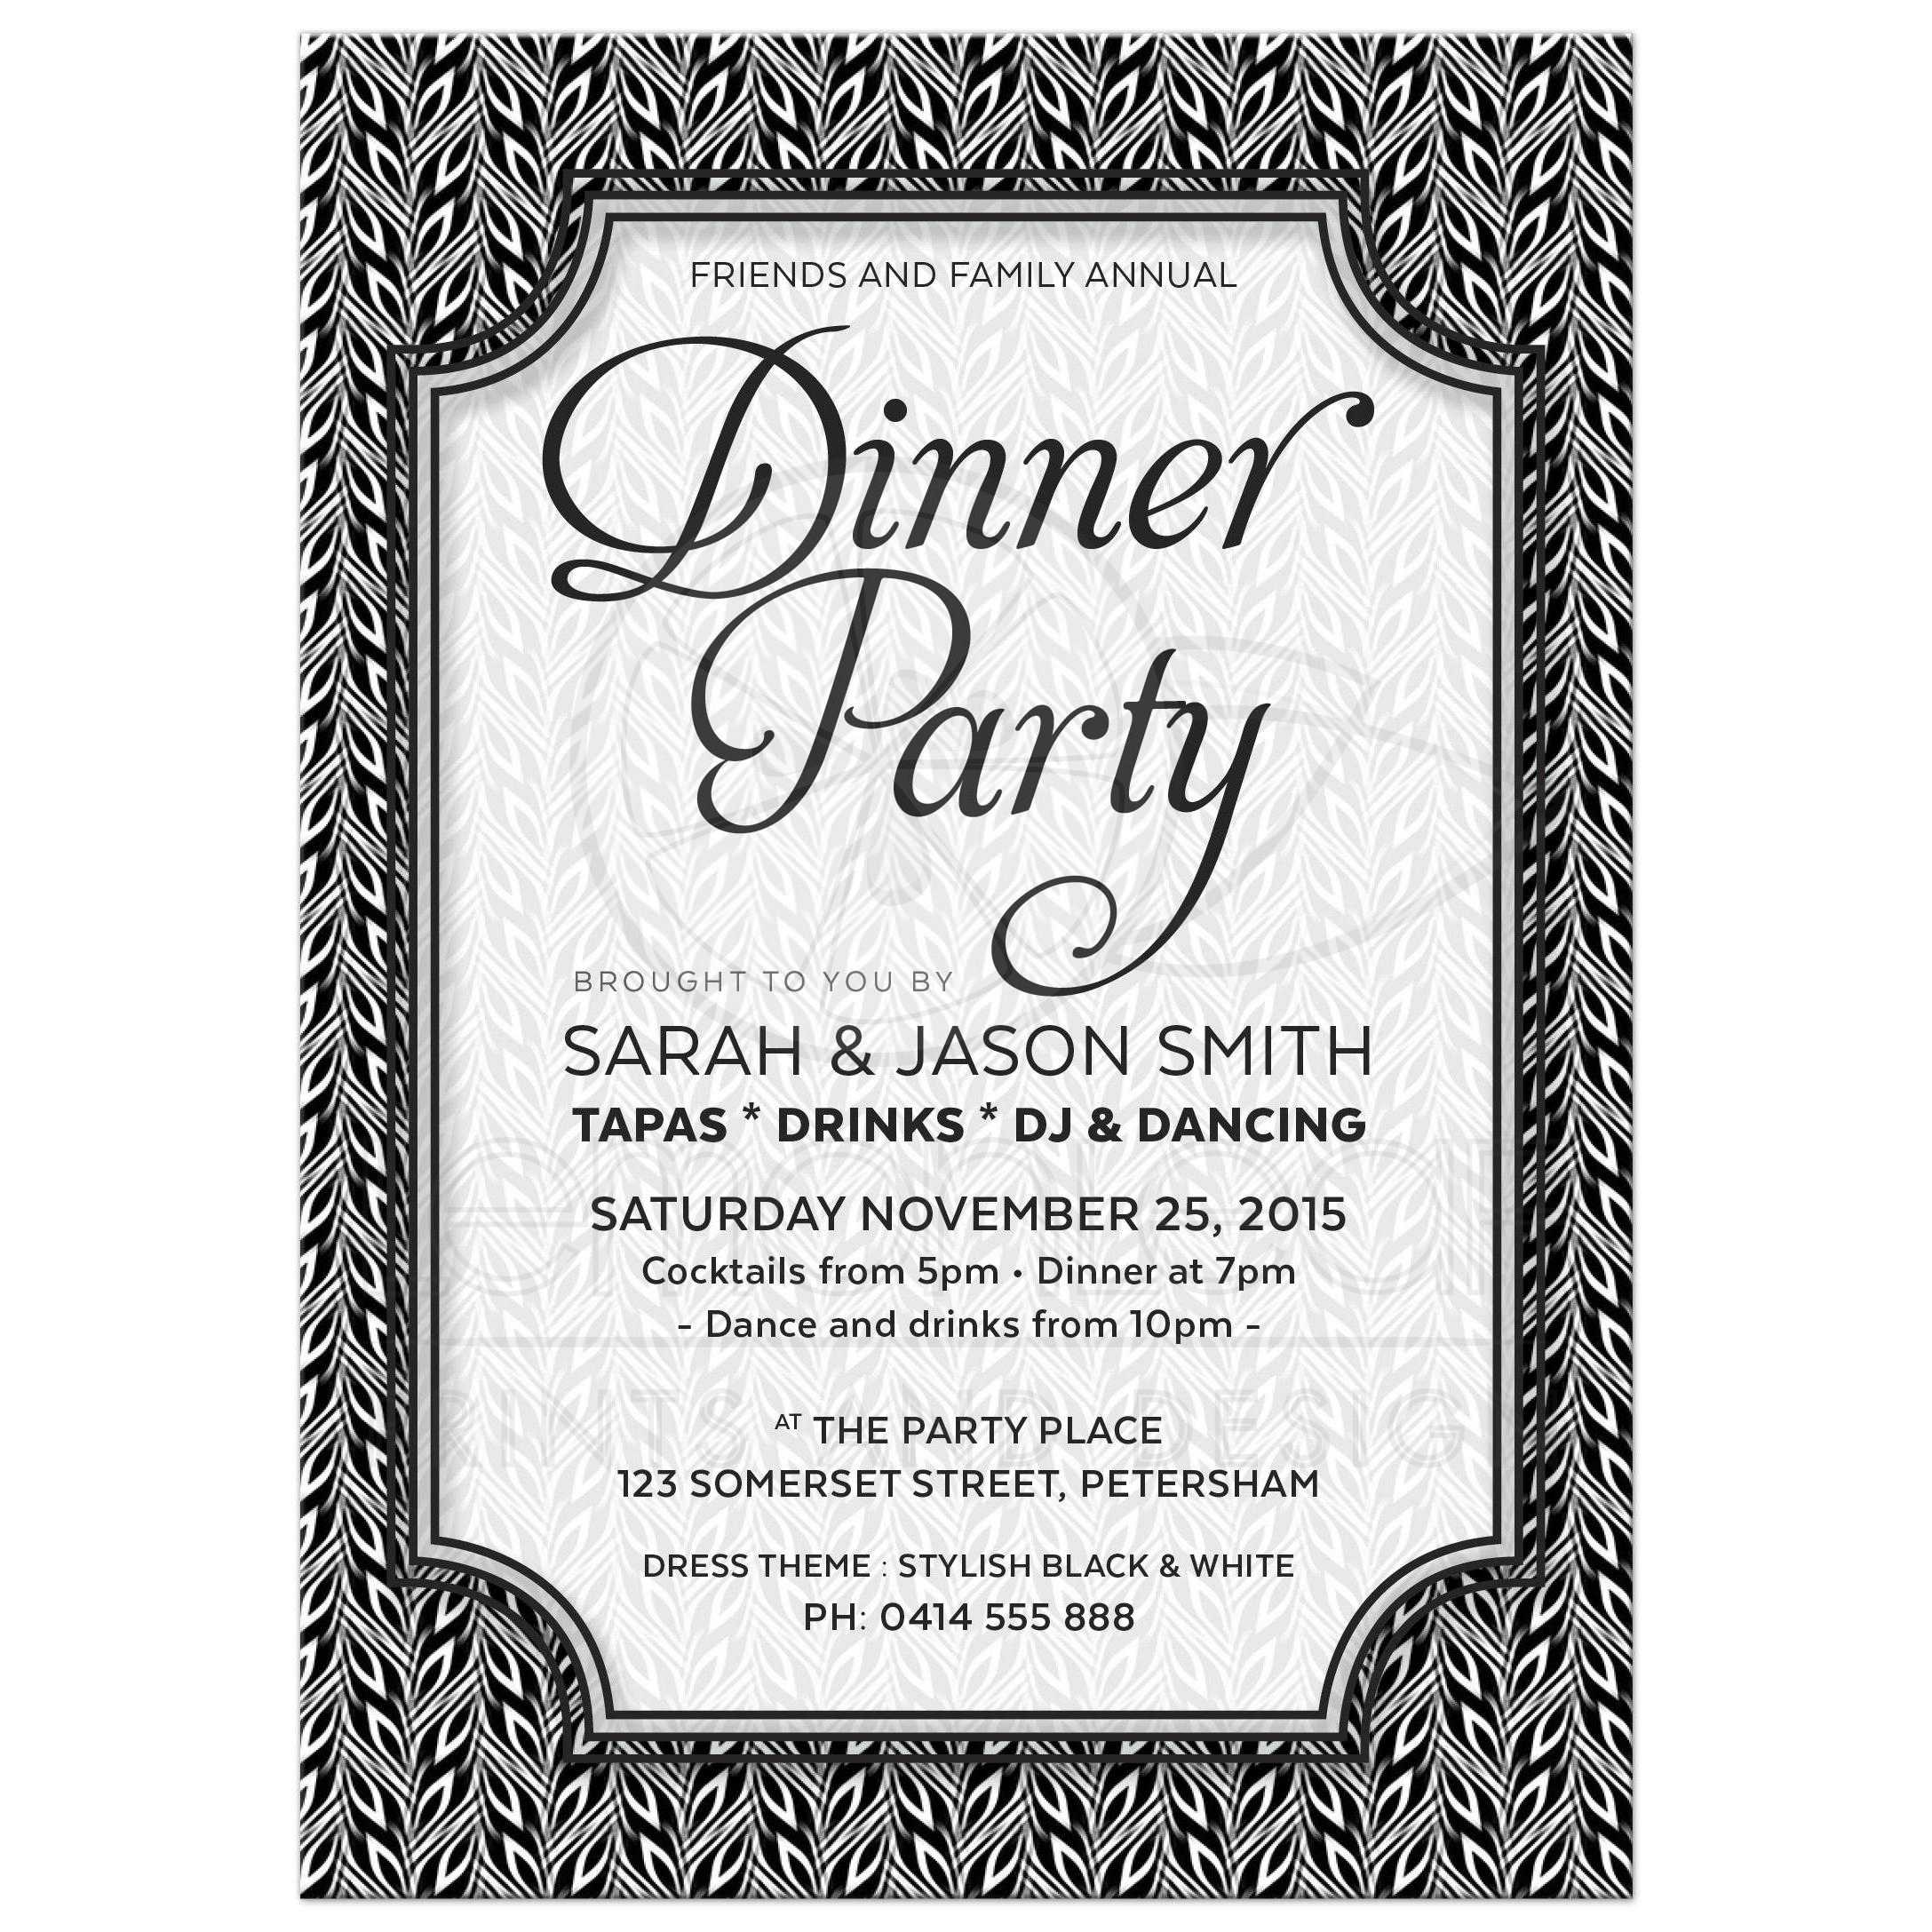 Black and white dinner party invitation simply stylish 02 simply stylish 2 black white dinner party invite stopboris